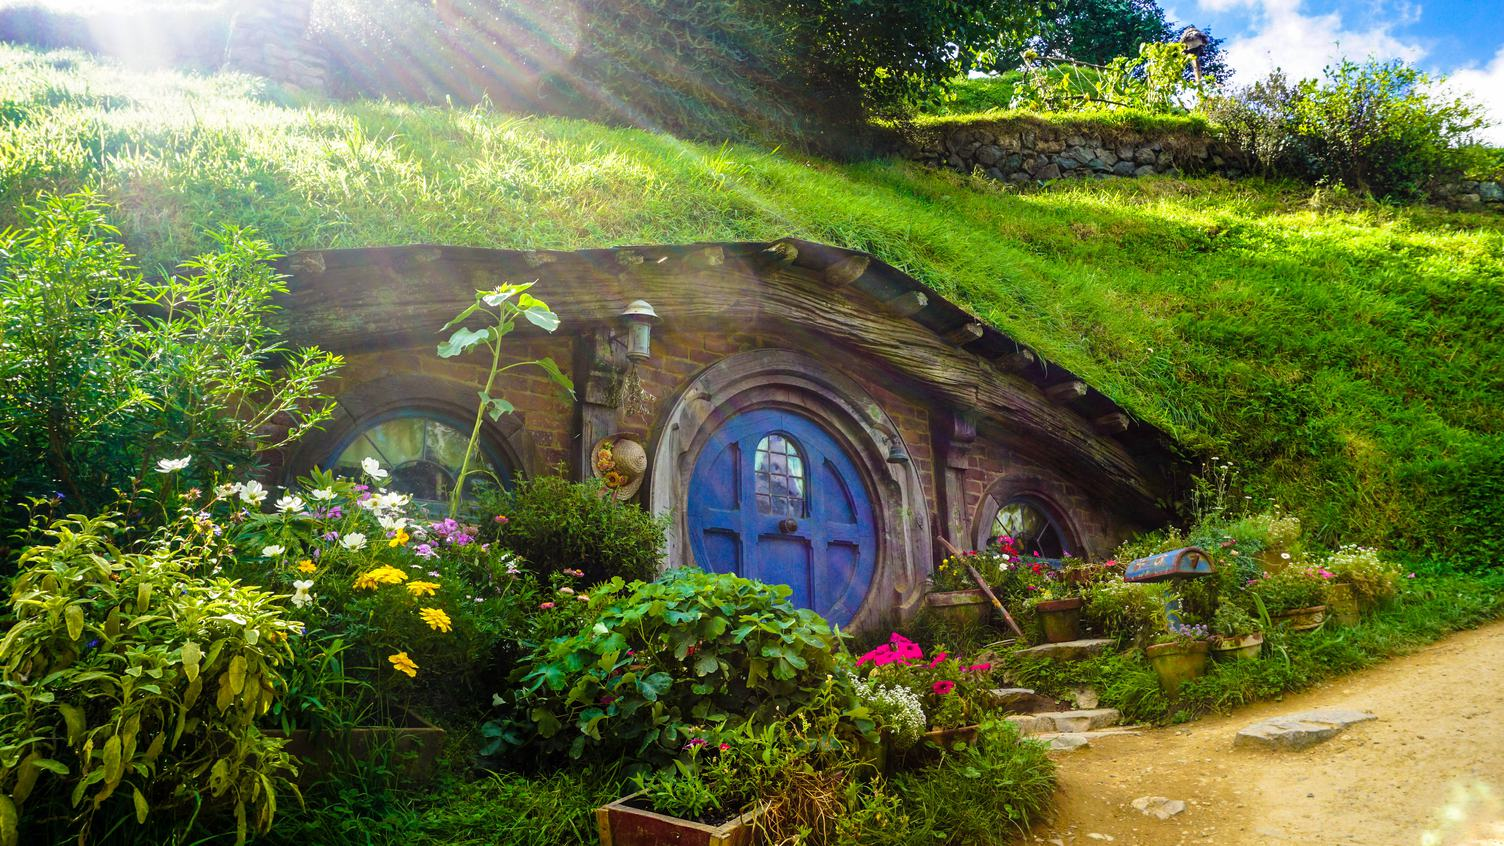 Live Like a Hobbit Small Cottage Surrounded by Greenery